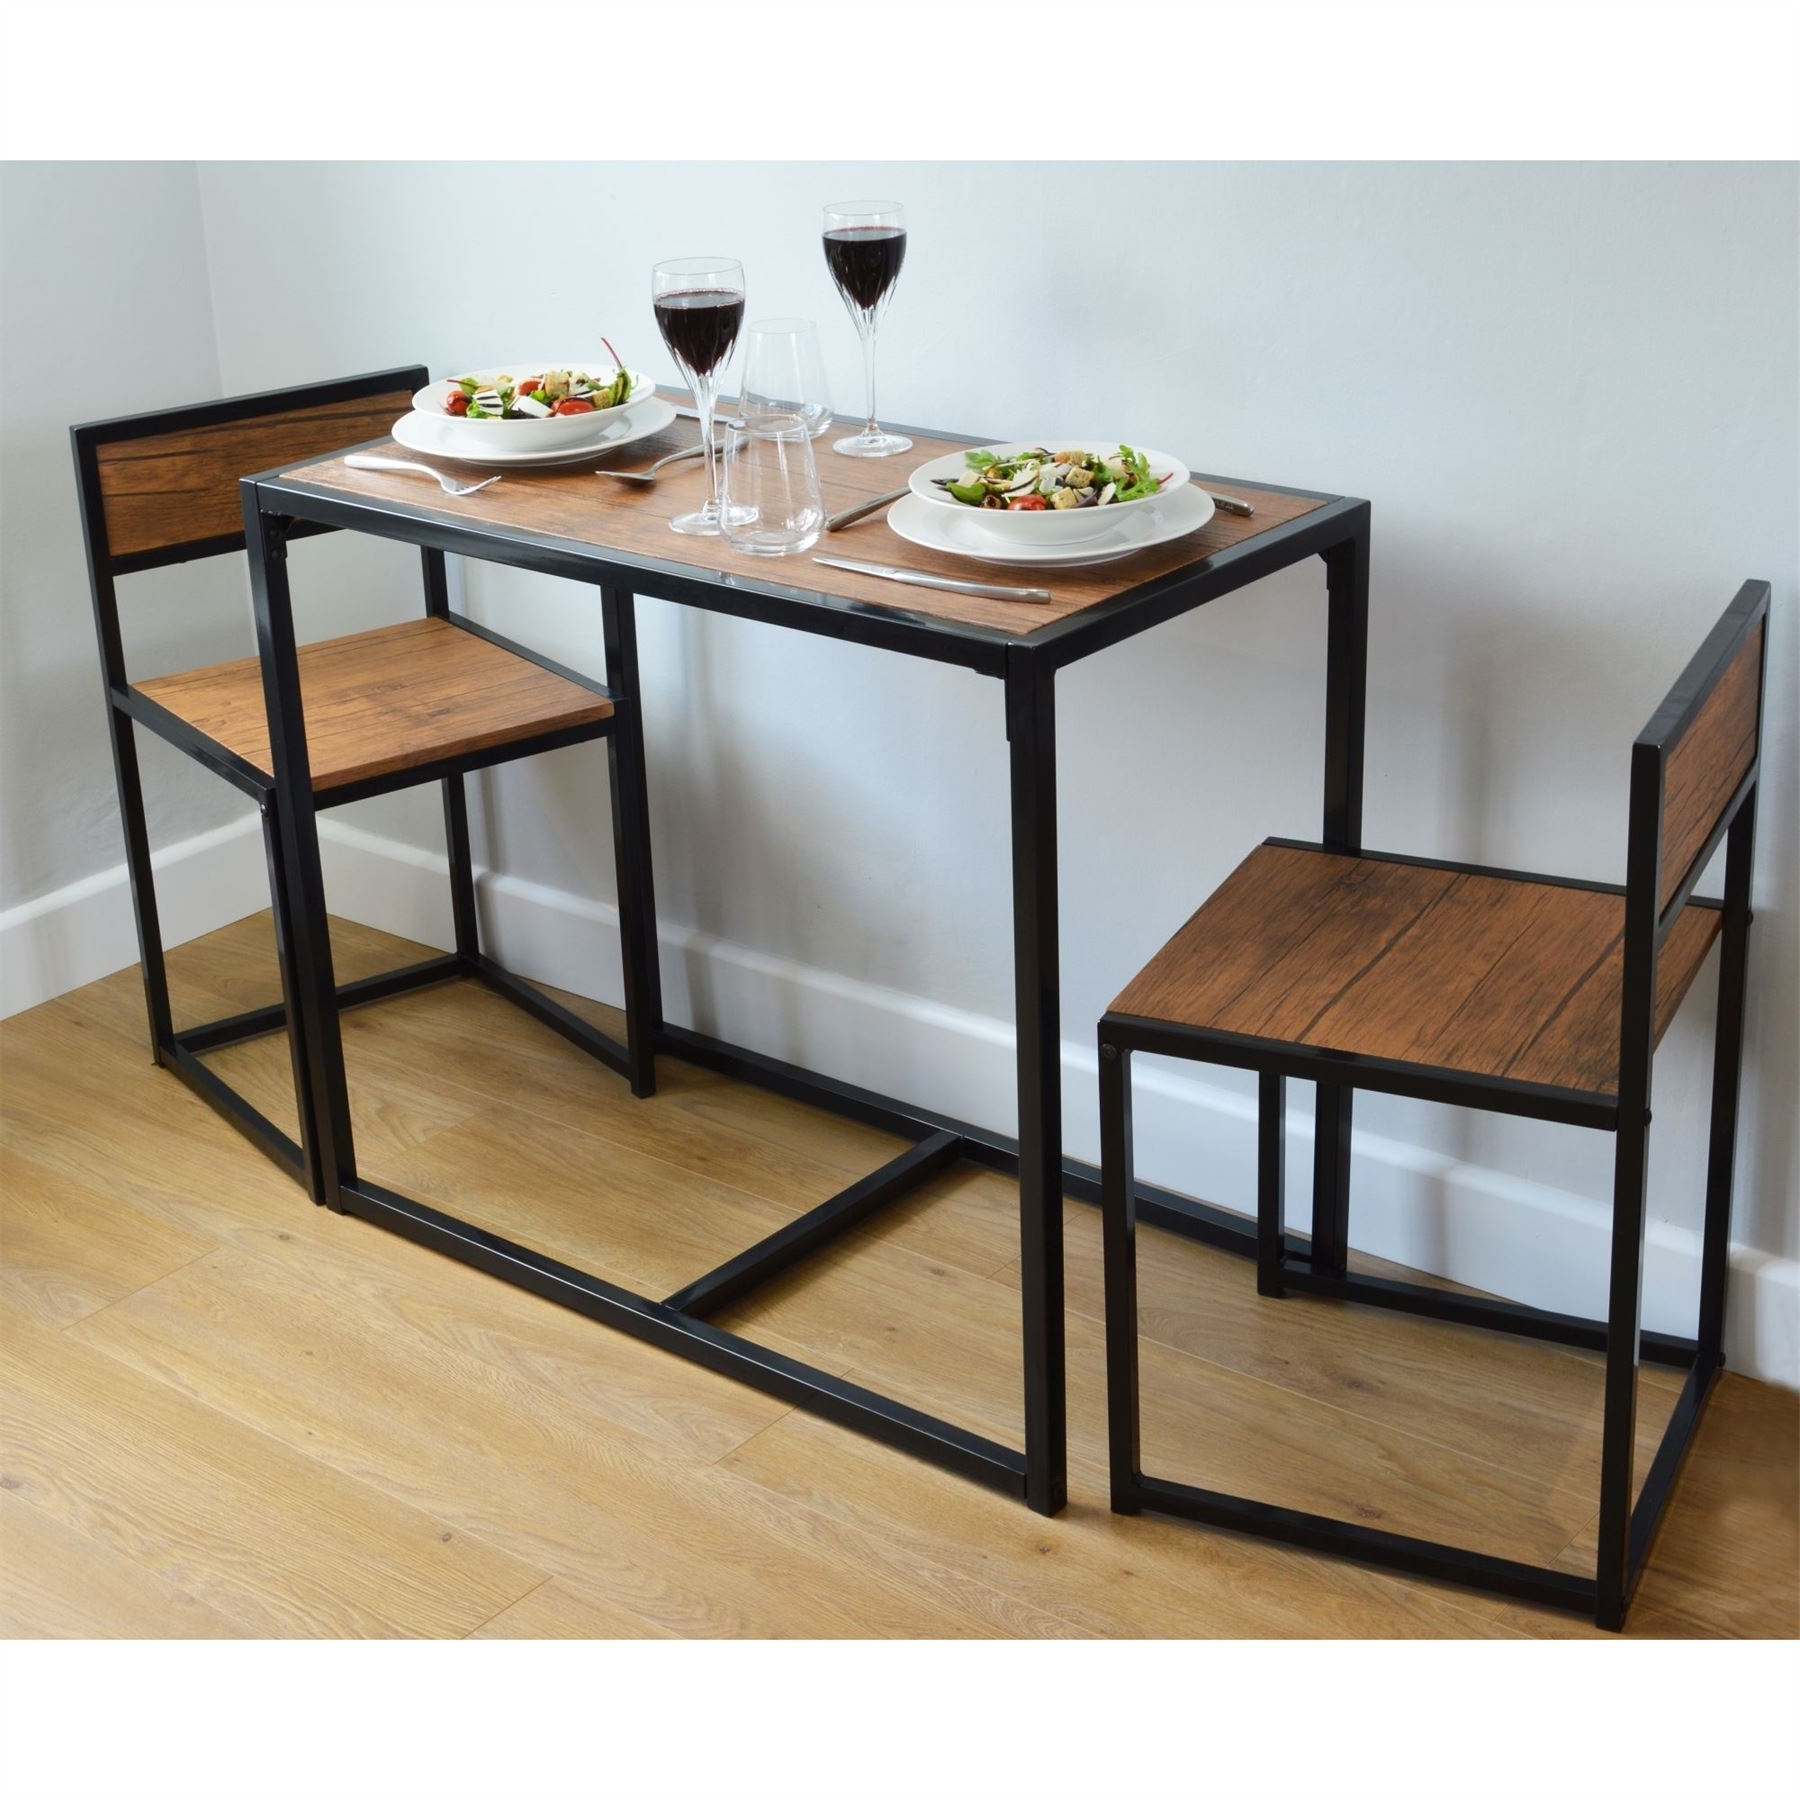 Trendy Compact Dining Sets In 2 Person Space Saving, Compact, Kitchen Dining Table & Chairs (View 7 of 25)